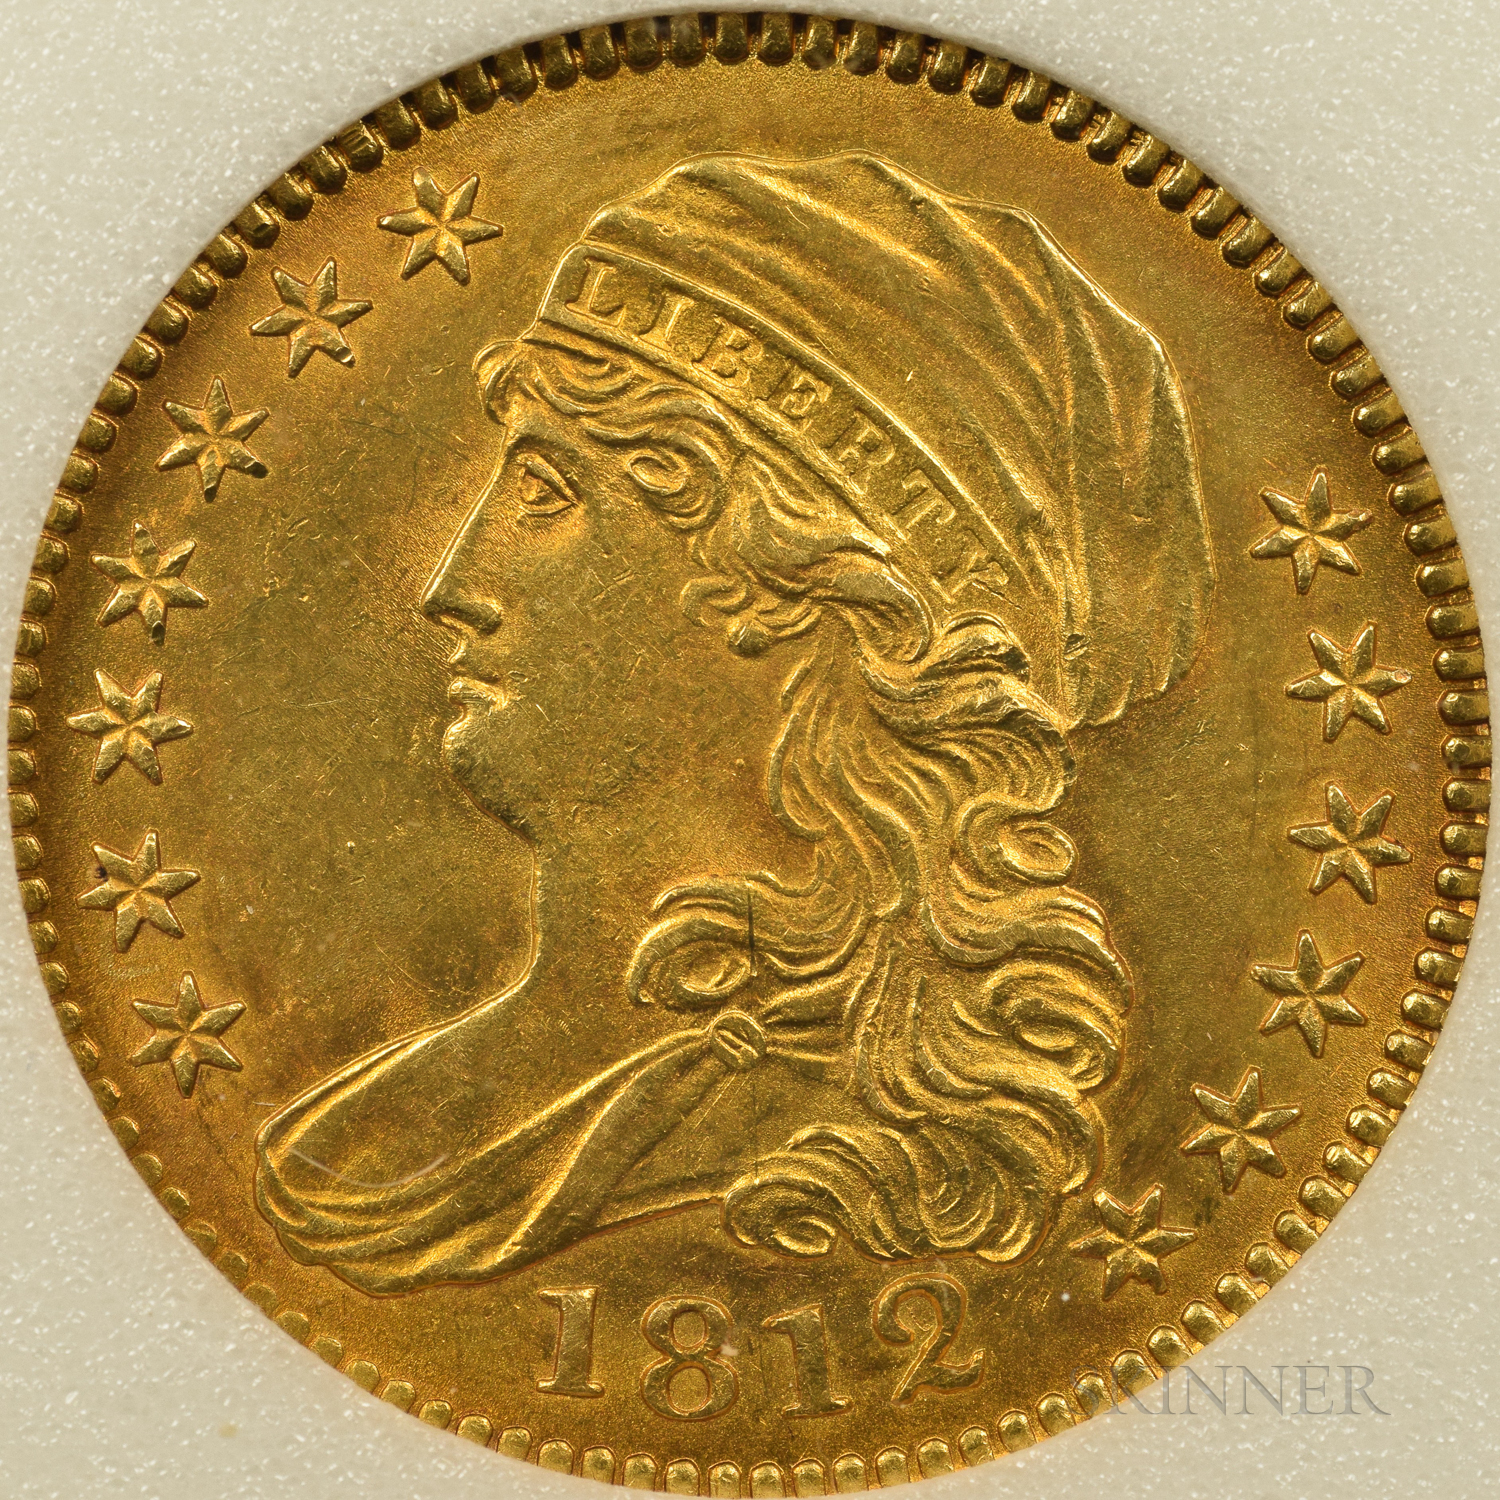 1812 Capped Bust Half Eagle, MS-63